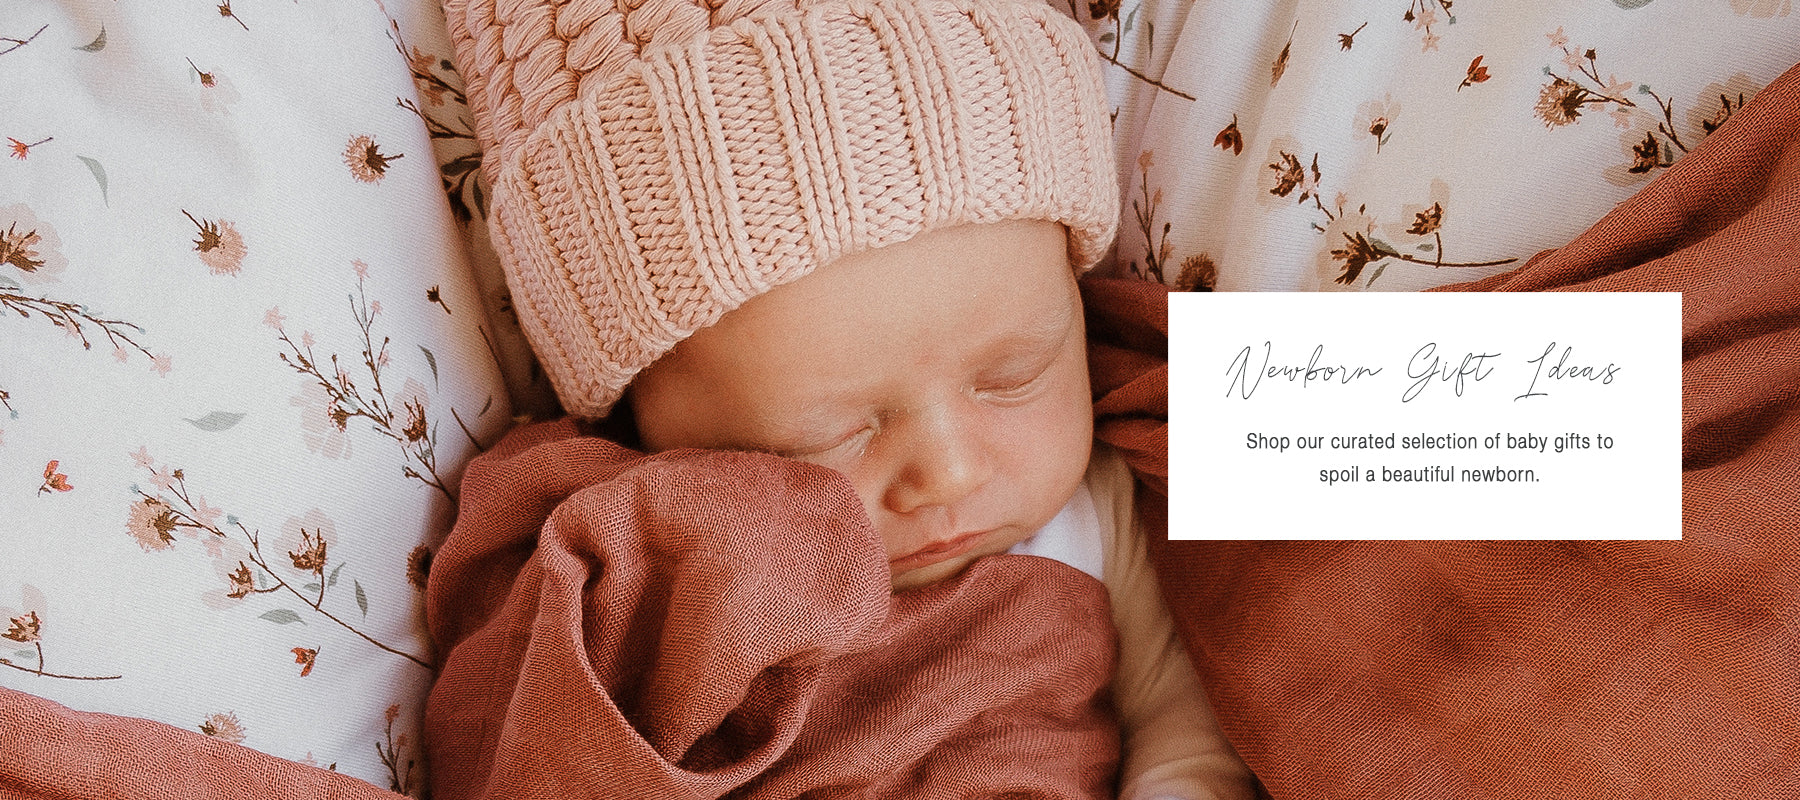 Newborn Gift Ideas